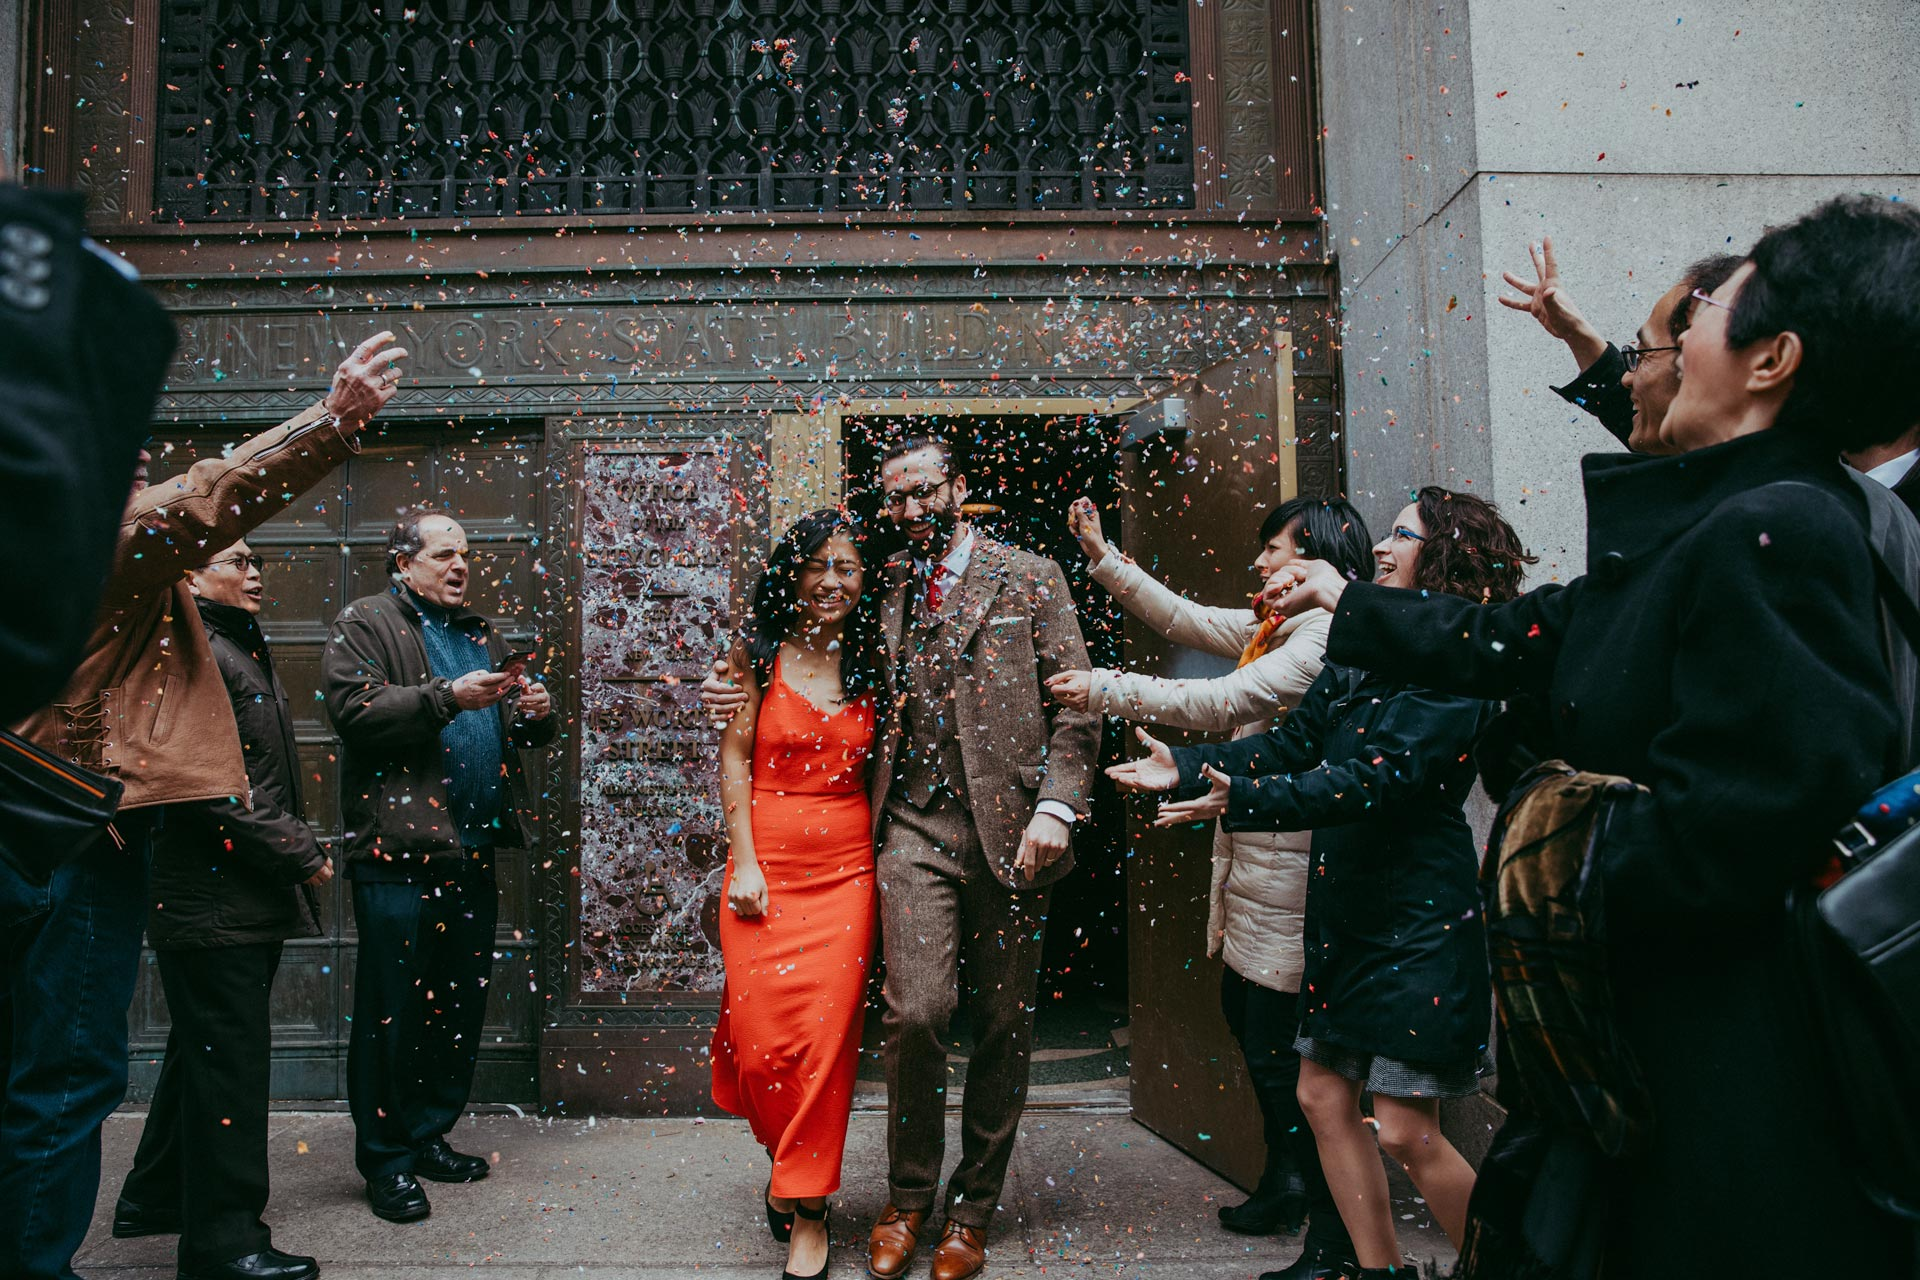 Linda and Ben exit Manhattan city hall marriage bureau with red dress and confetti toss in NYC